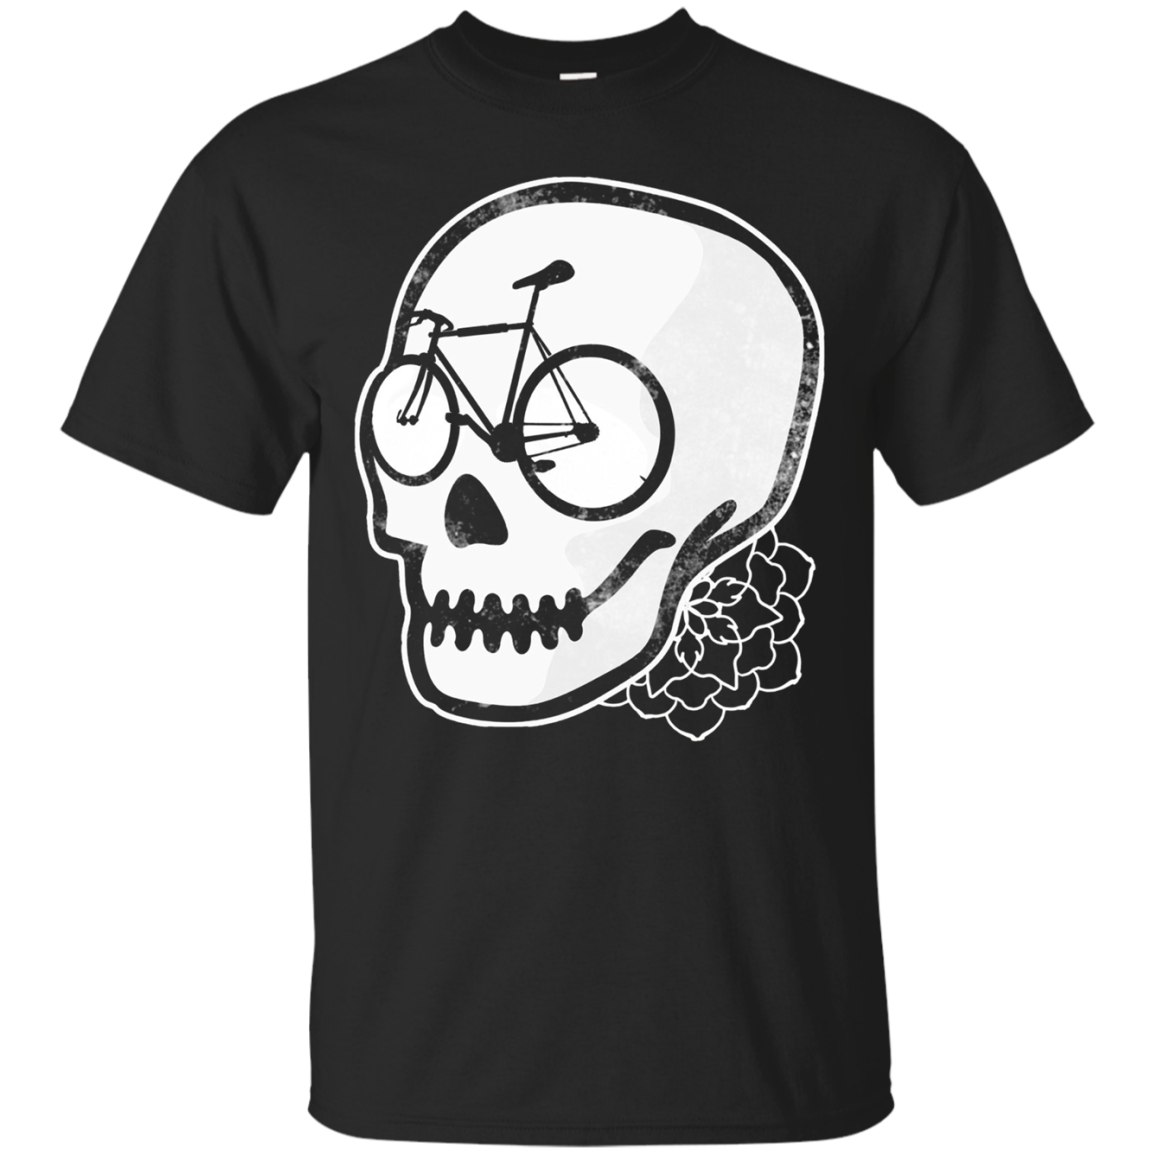 Bicycle Skull T-shirt - Commuters, Cyclists & Bike Riders